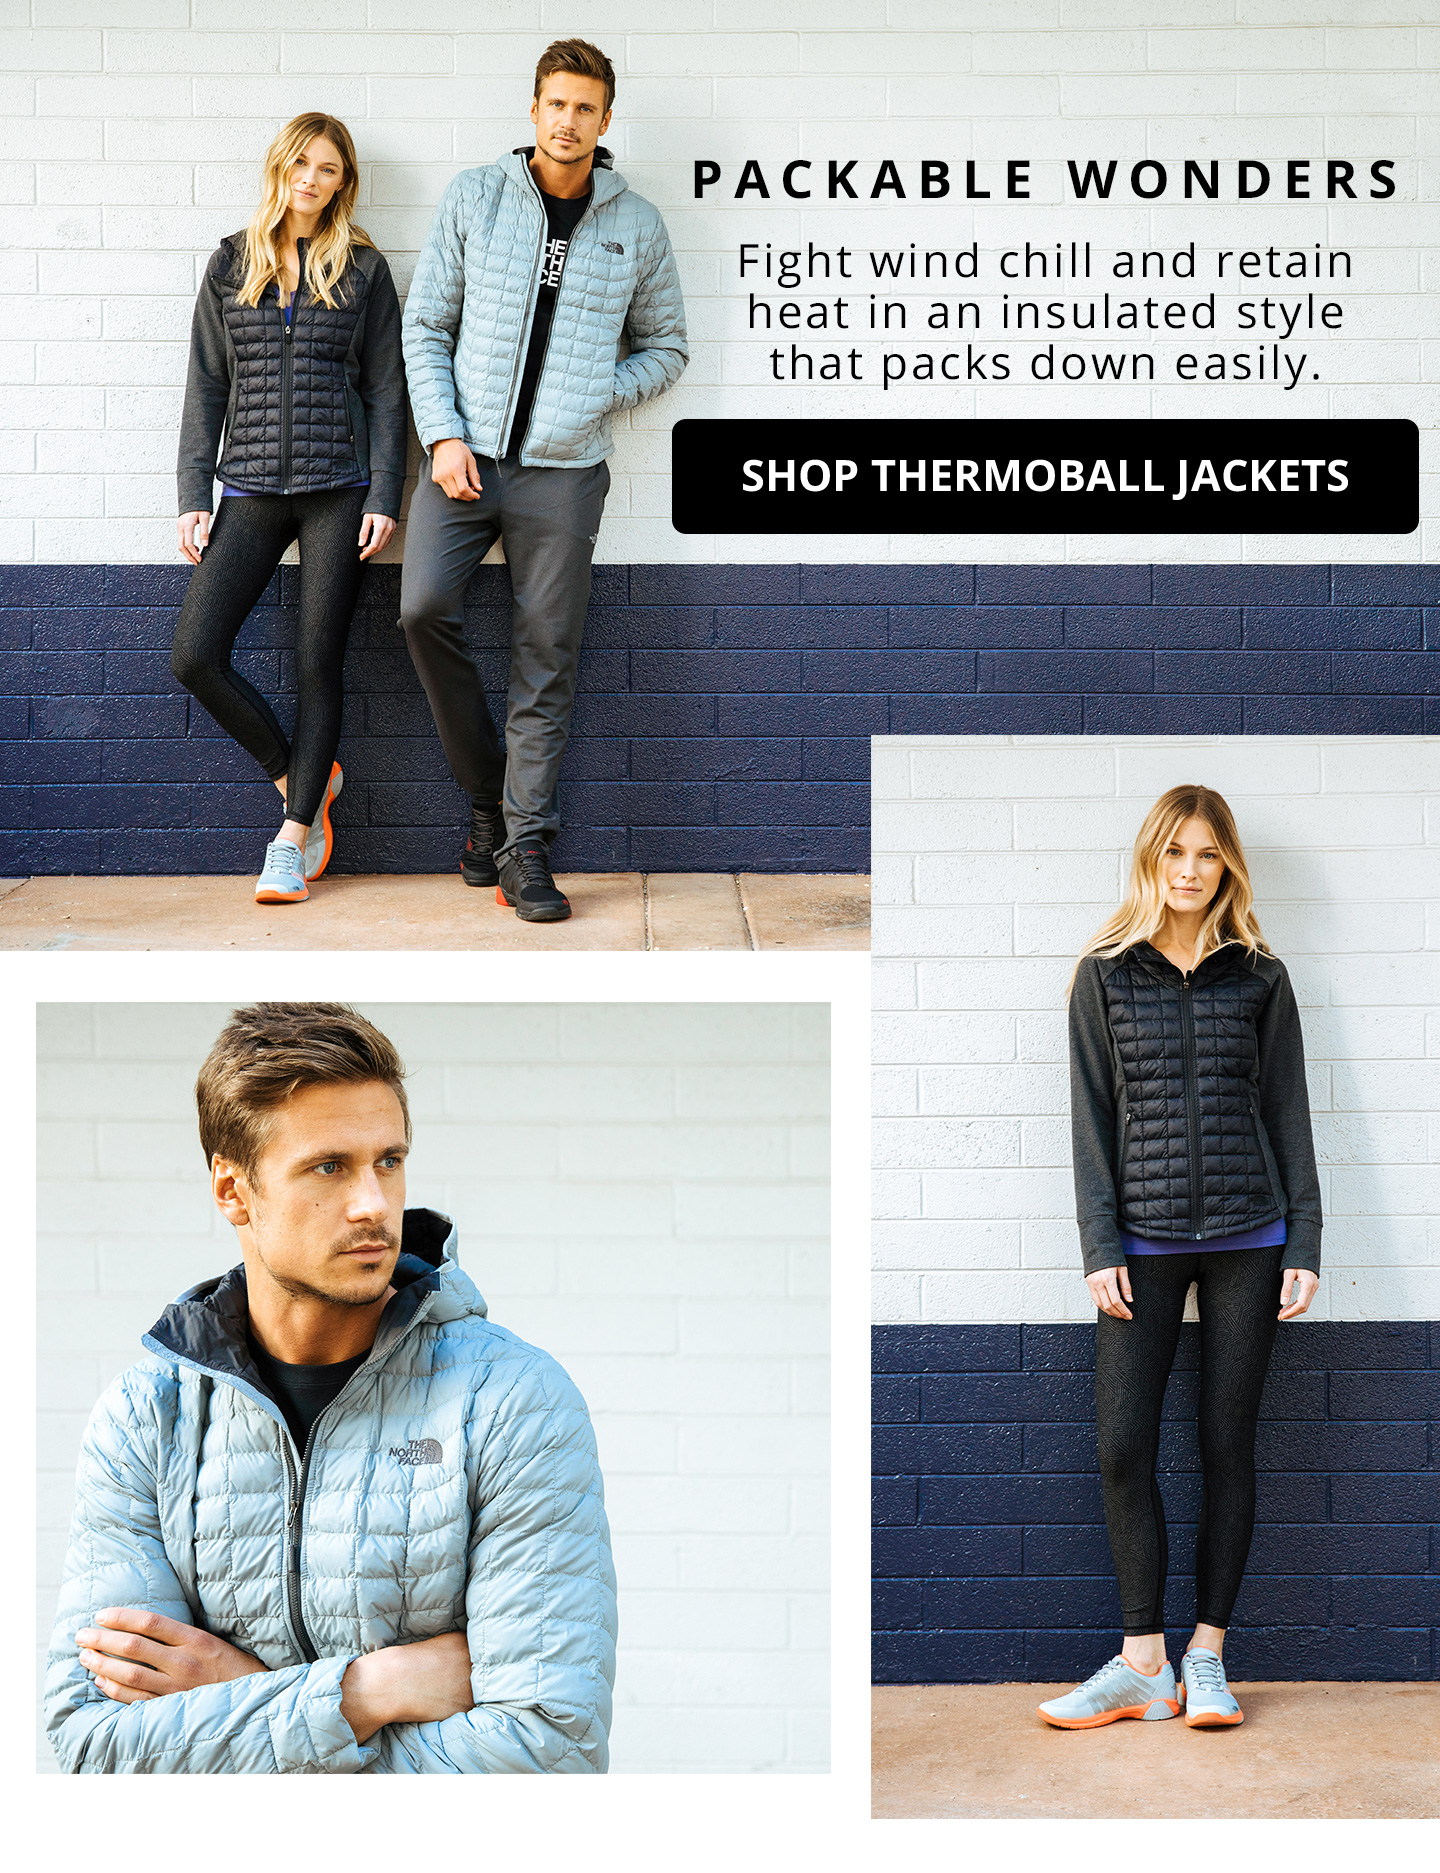 Shop Thermoball Jackets